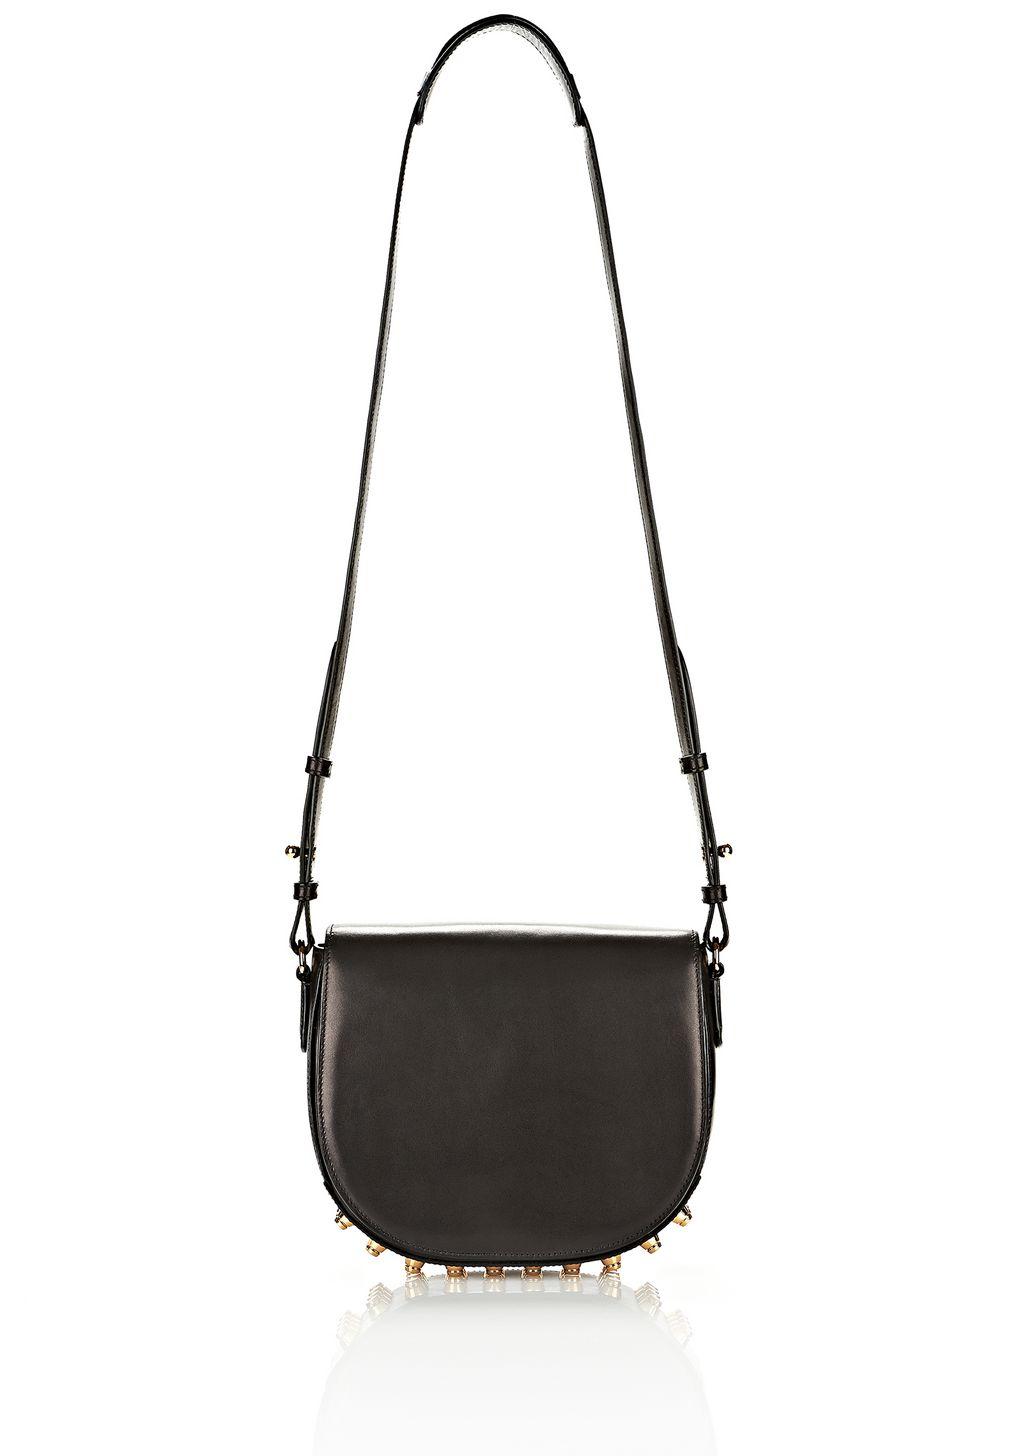 LIA IN BLACK WITH YELLOW GOLD | Shoulder Bag | Alexander Wang ...